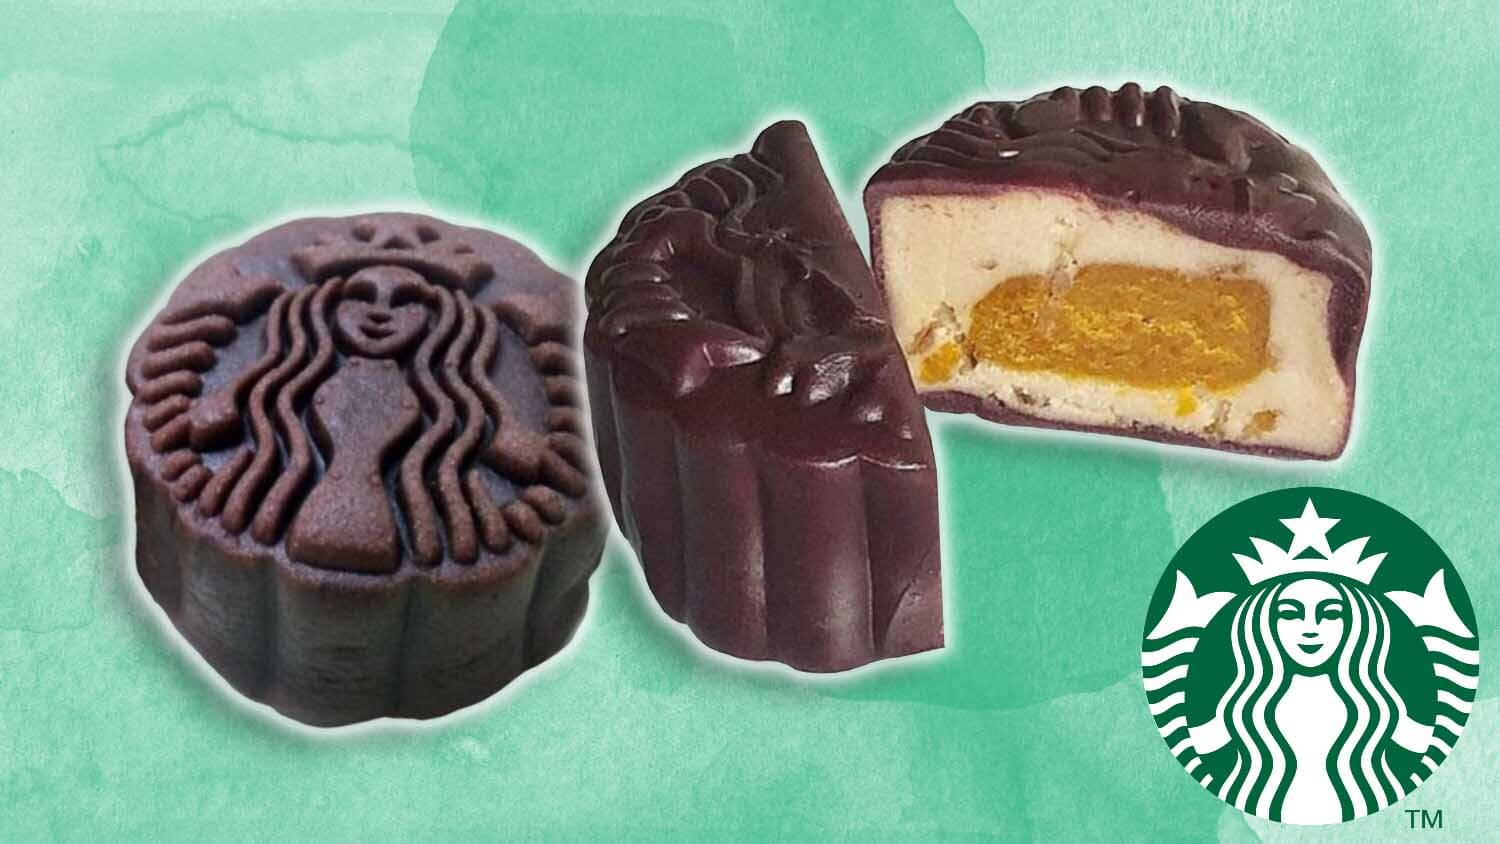 There Are Vegan Mooncakes At These Starbucks Locations Now